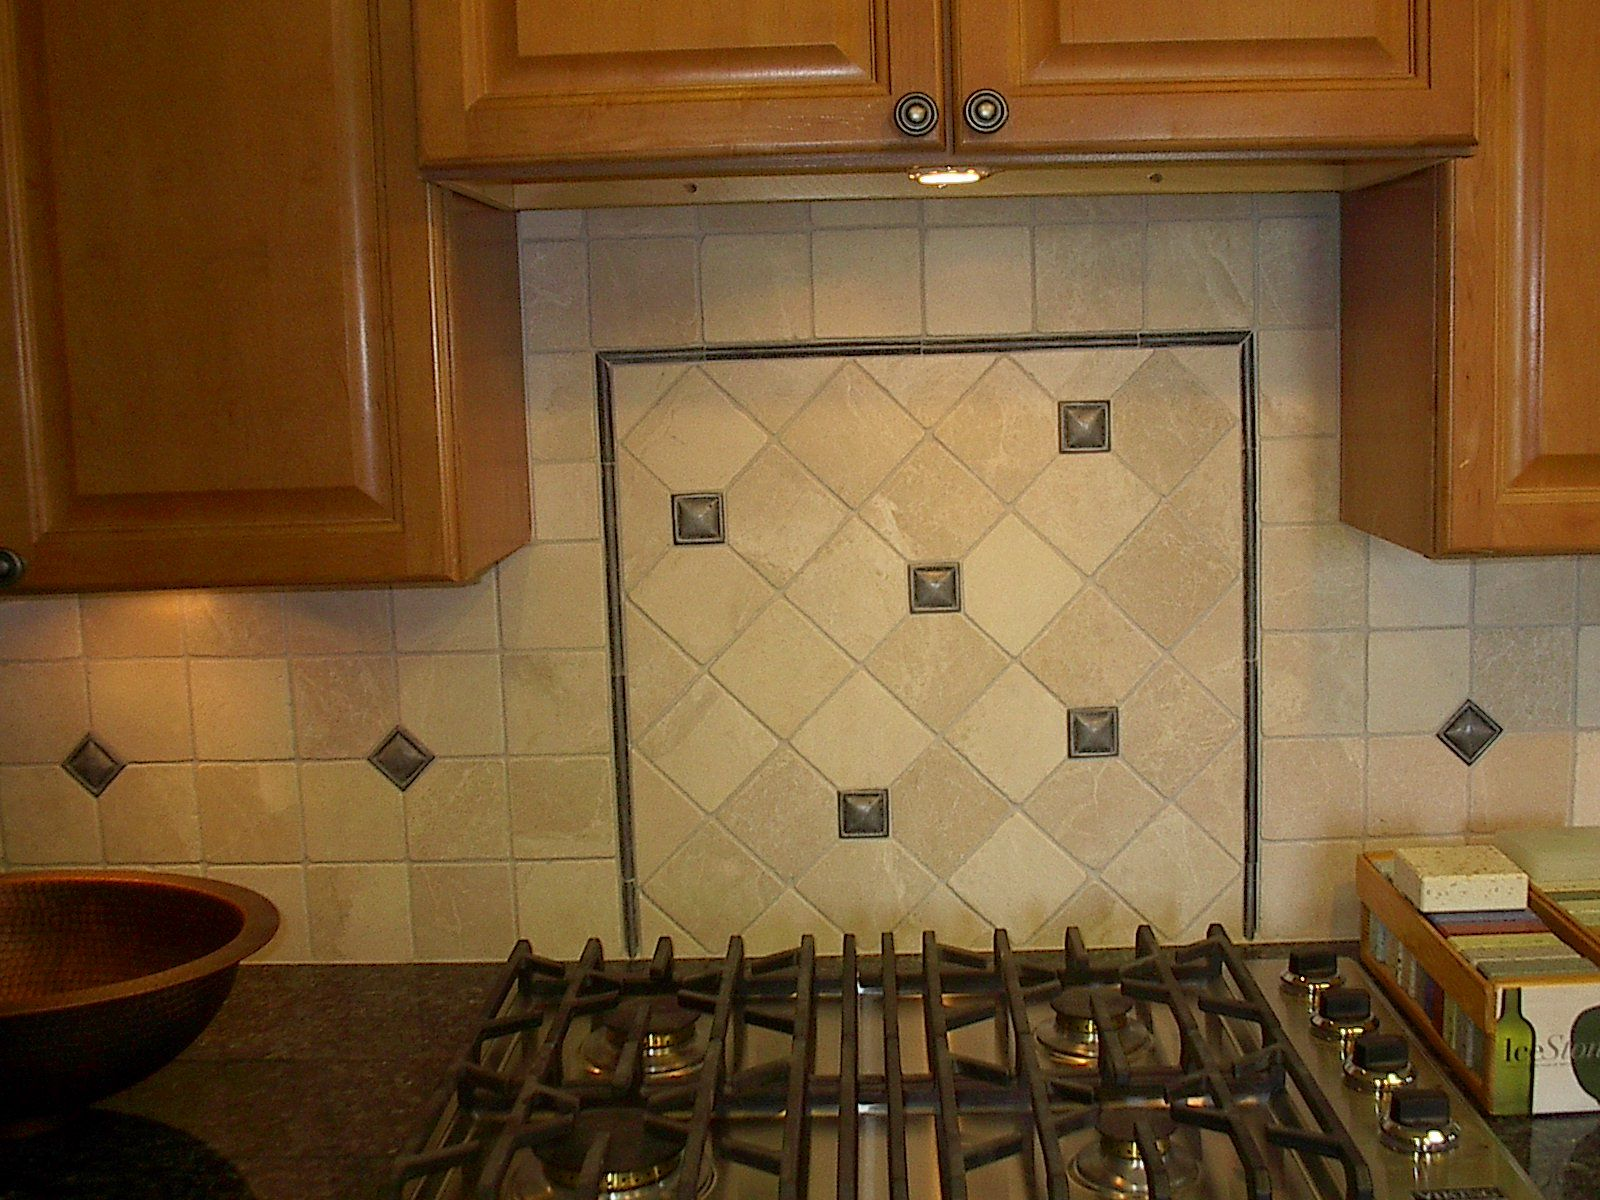 Decorative Pencil Tile Magnificent Exciting Travertine Backsplash For Kitchen Decor Transformation Design Inspiration